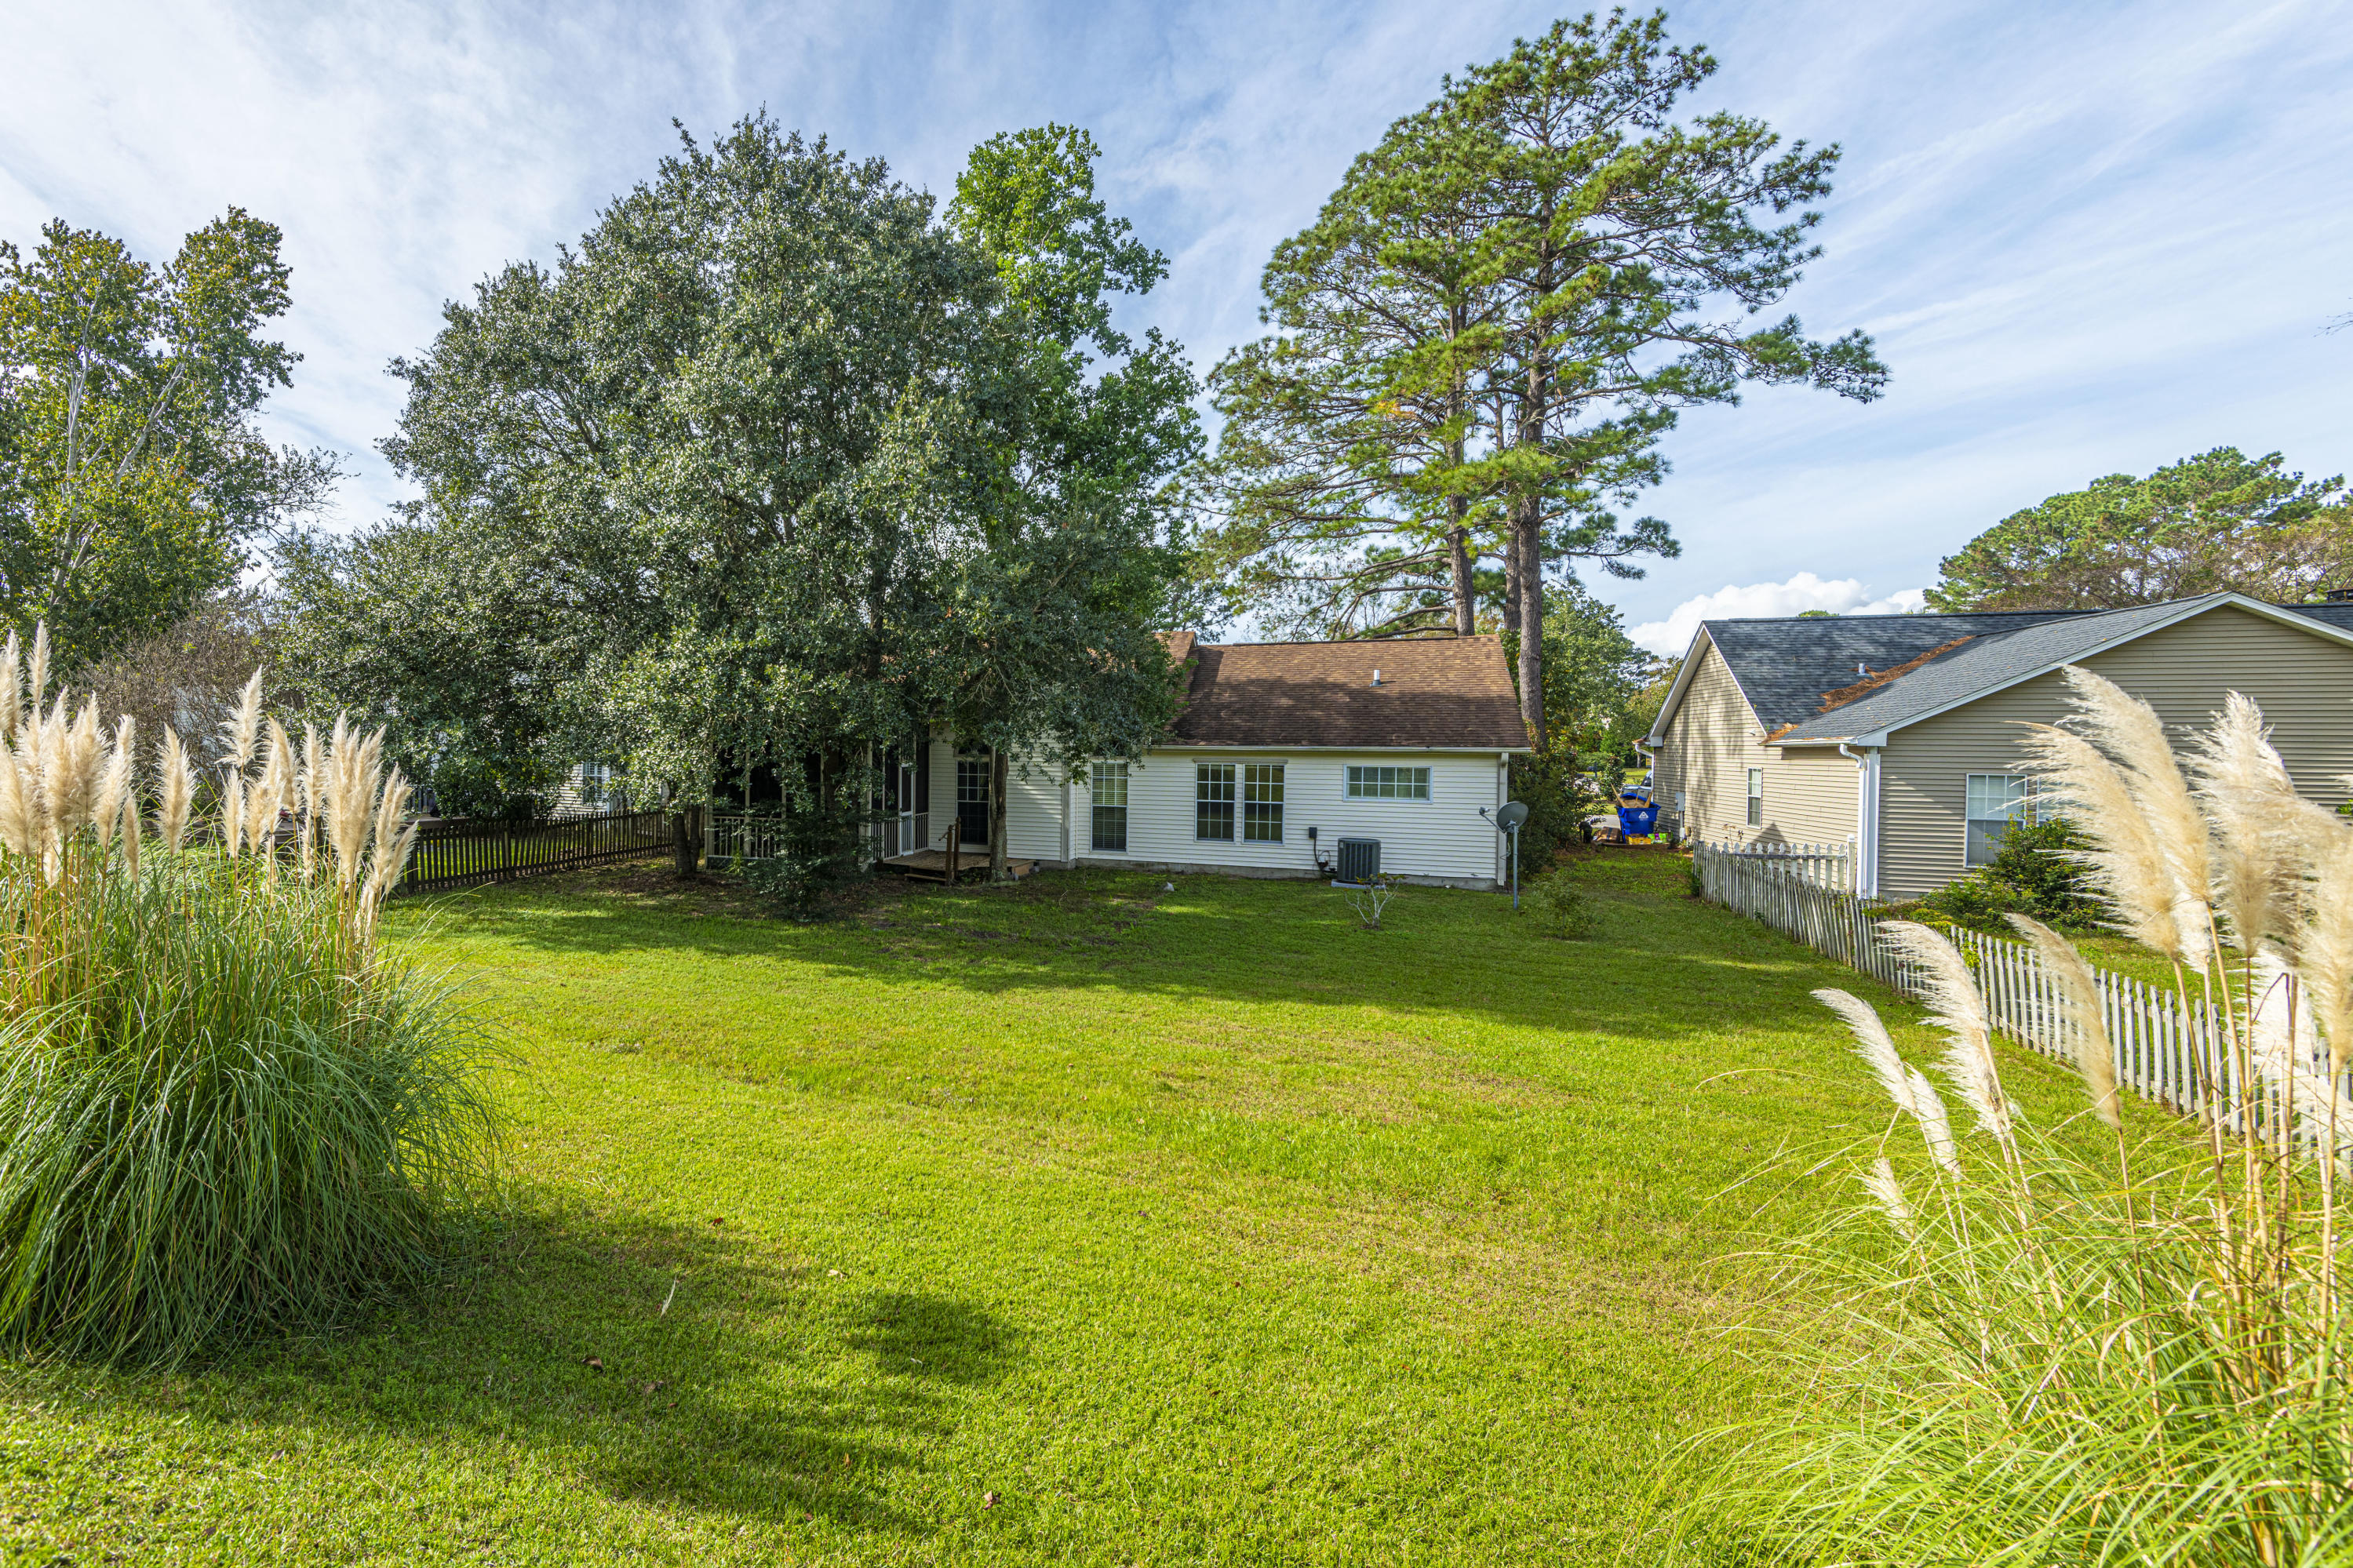 Belle Hall Homes For Sale - 448 Piazza, Mount Pleasant, SC - 26